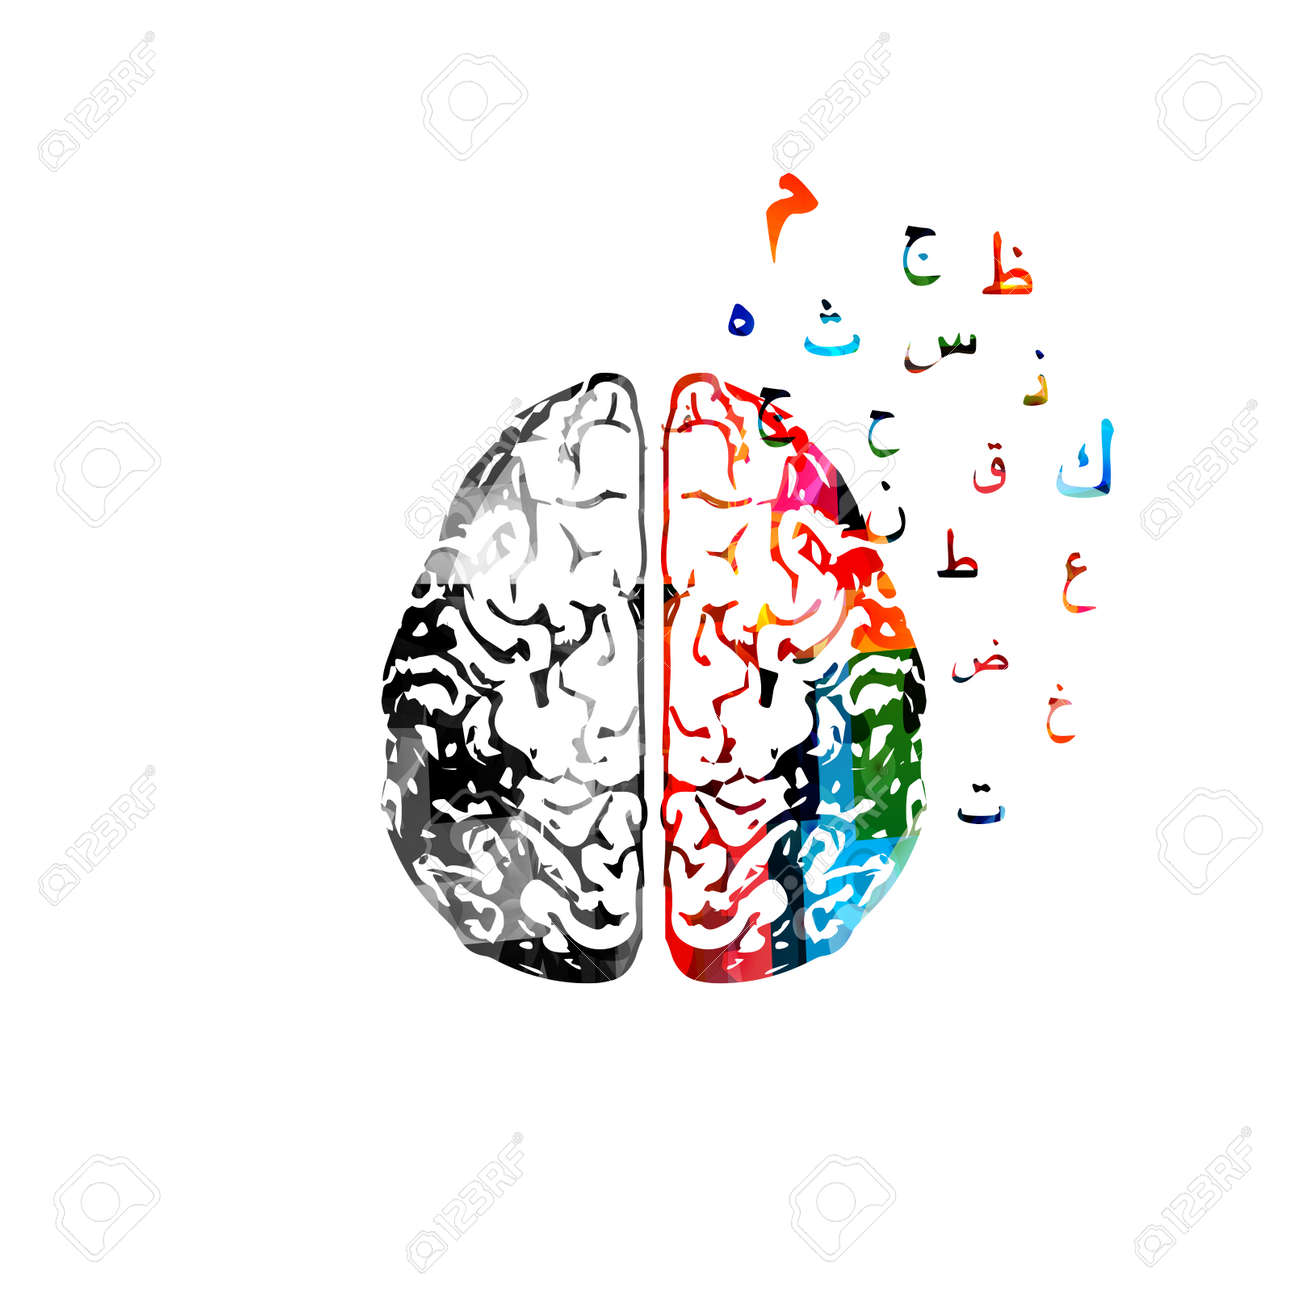 Colorful human brain with arabic calligraphy symbols royalty free colorful human brain with arabic calligraphy symbols stock vector 85980656 buycottarizona Gallery